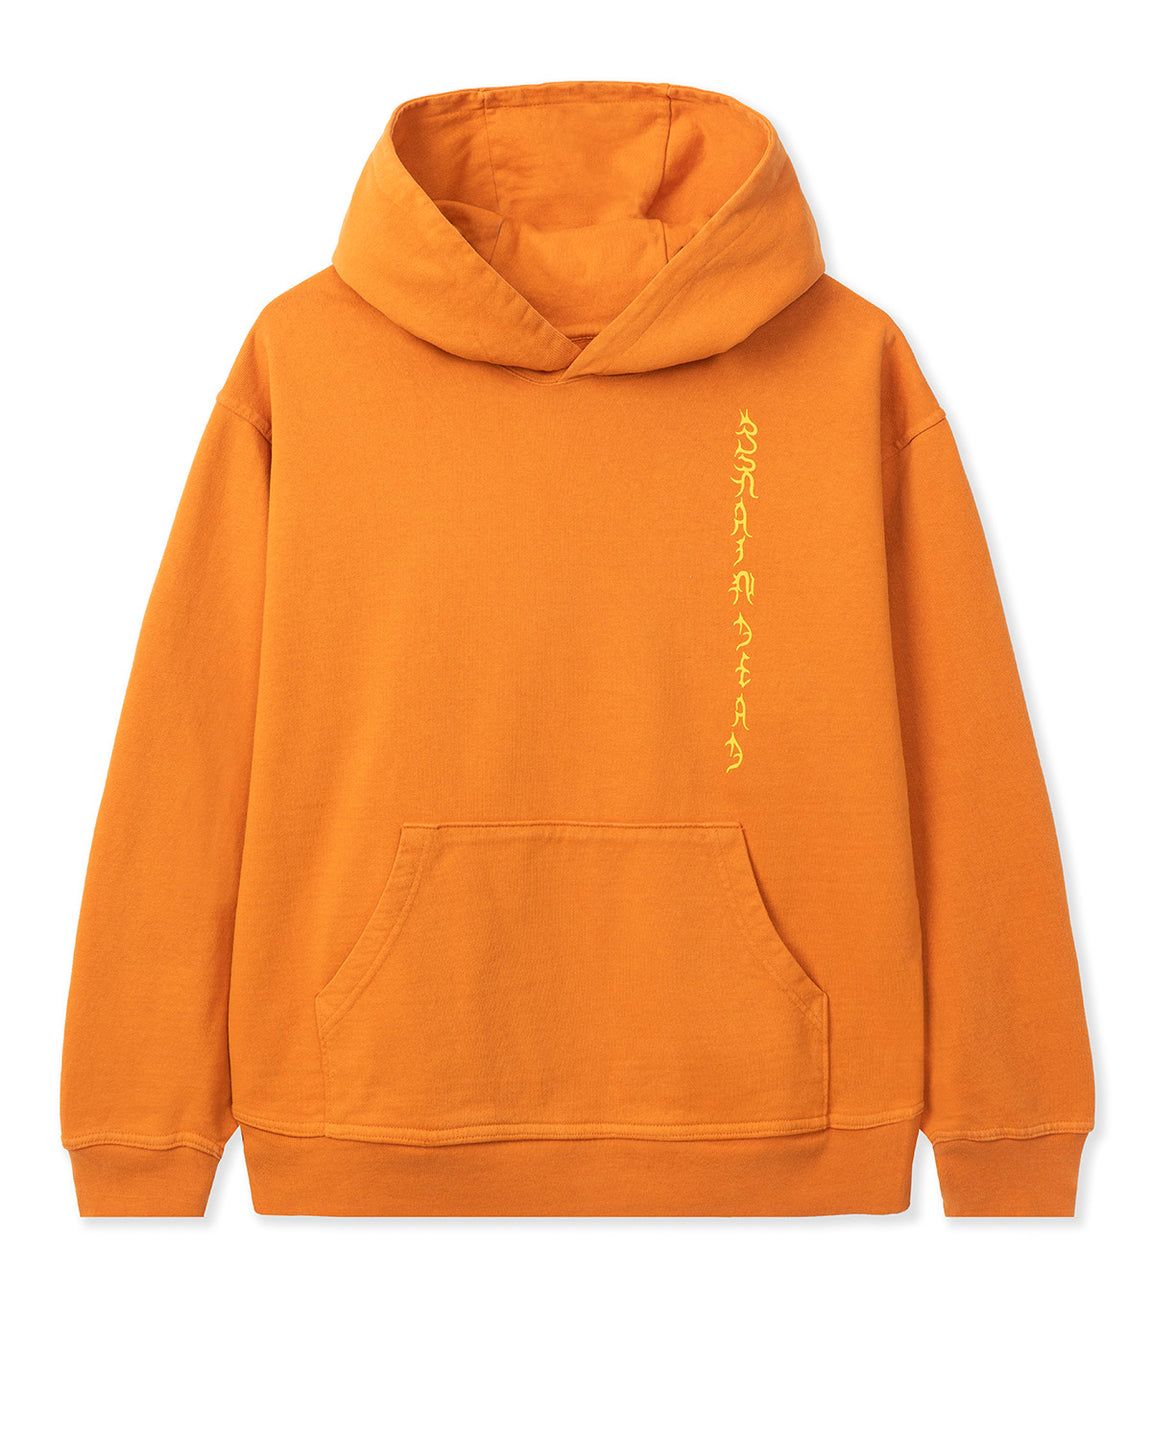 Jonny Negron Bondage Print Hooded Sweatshirt - Orange